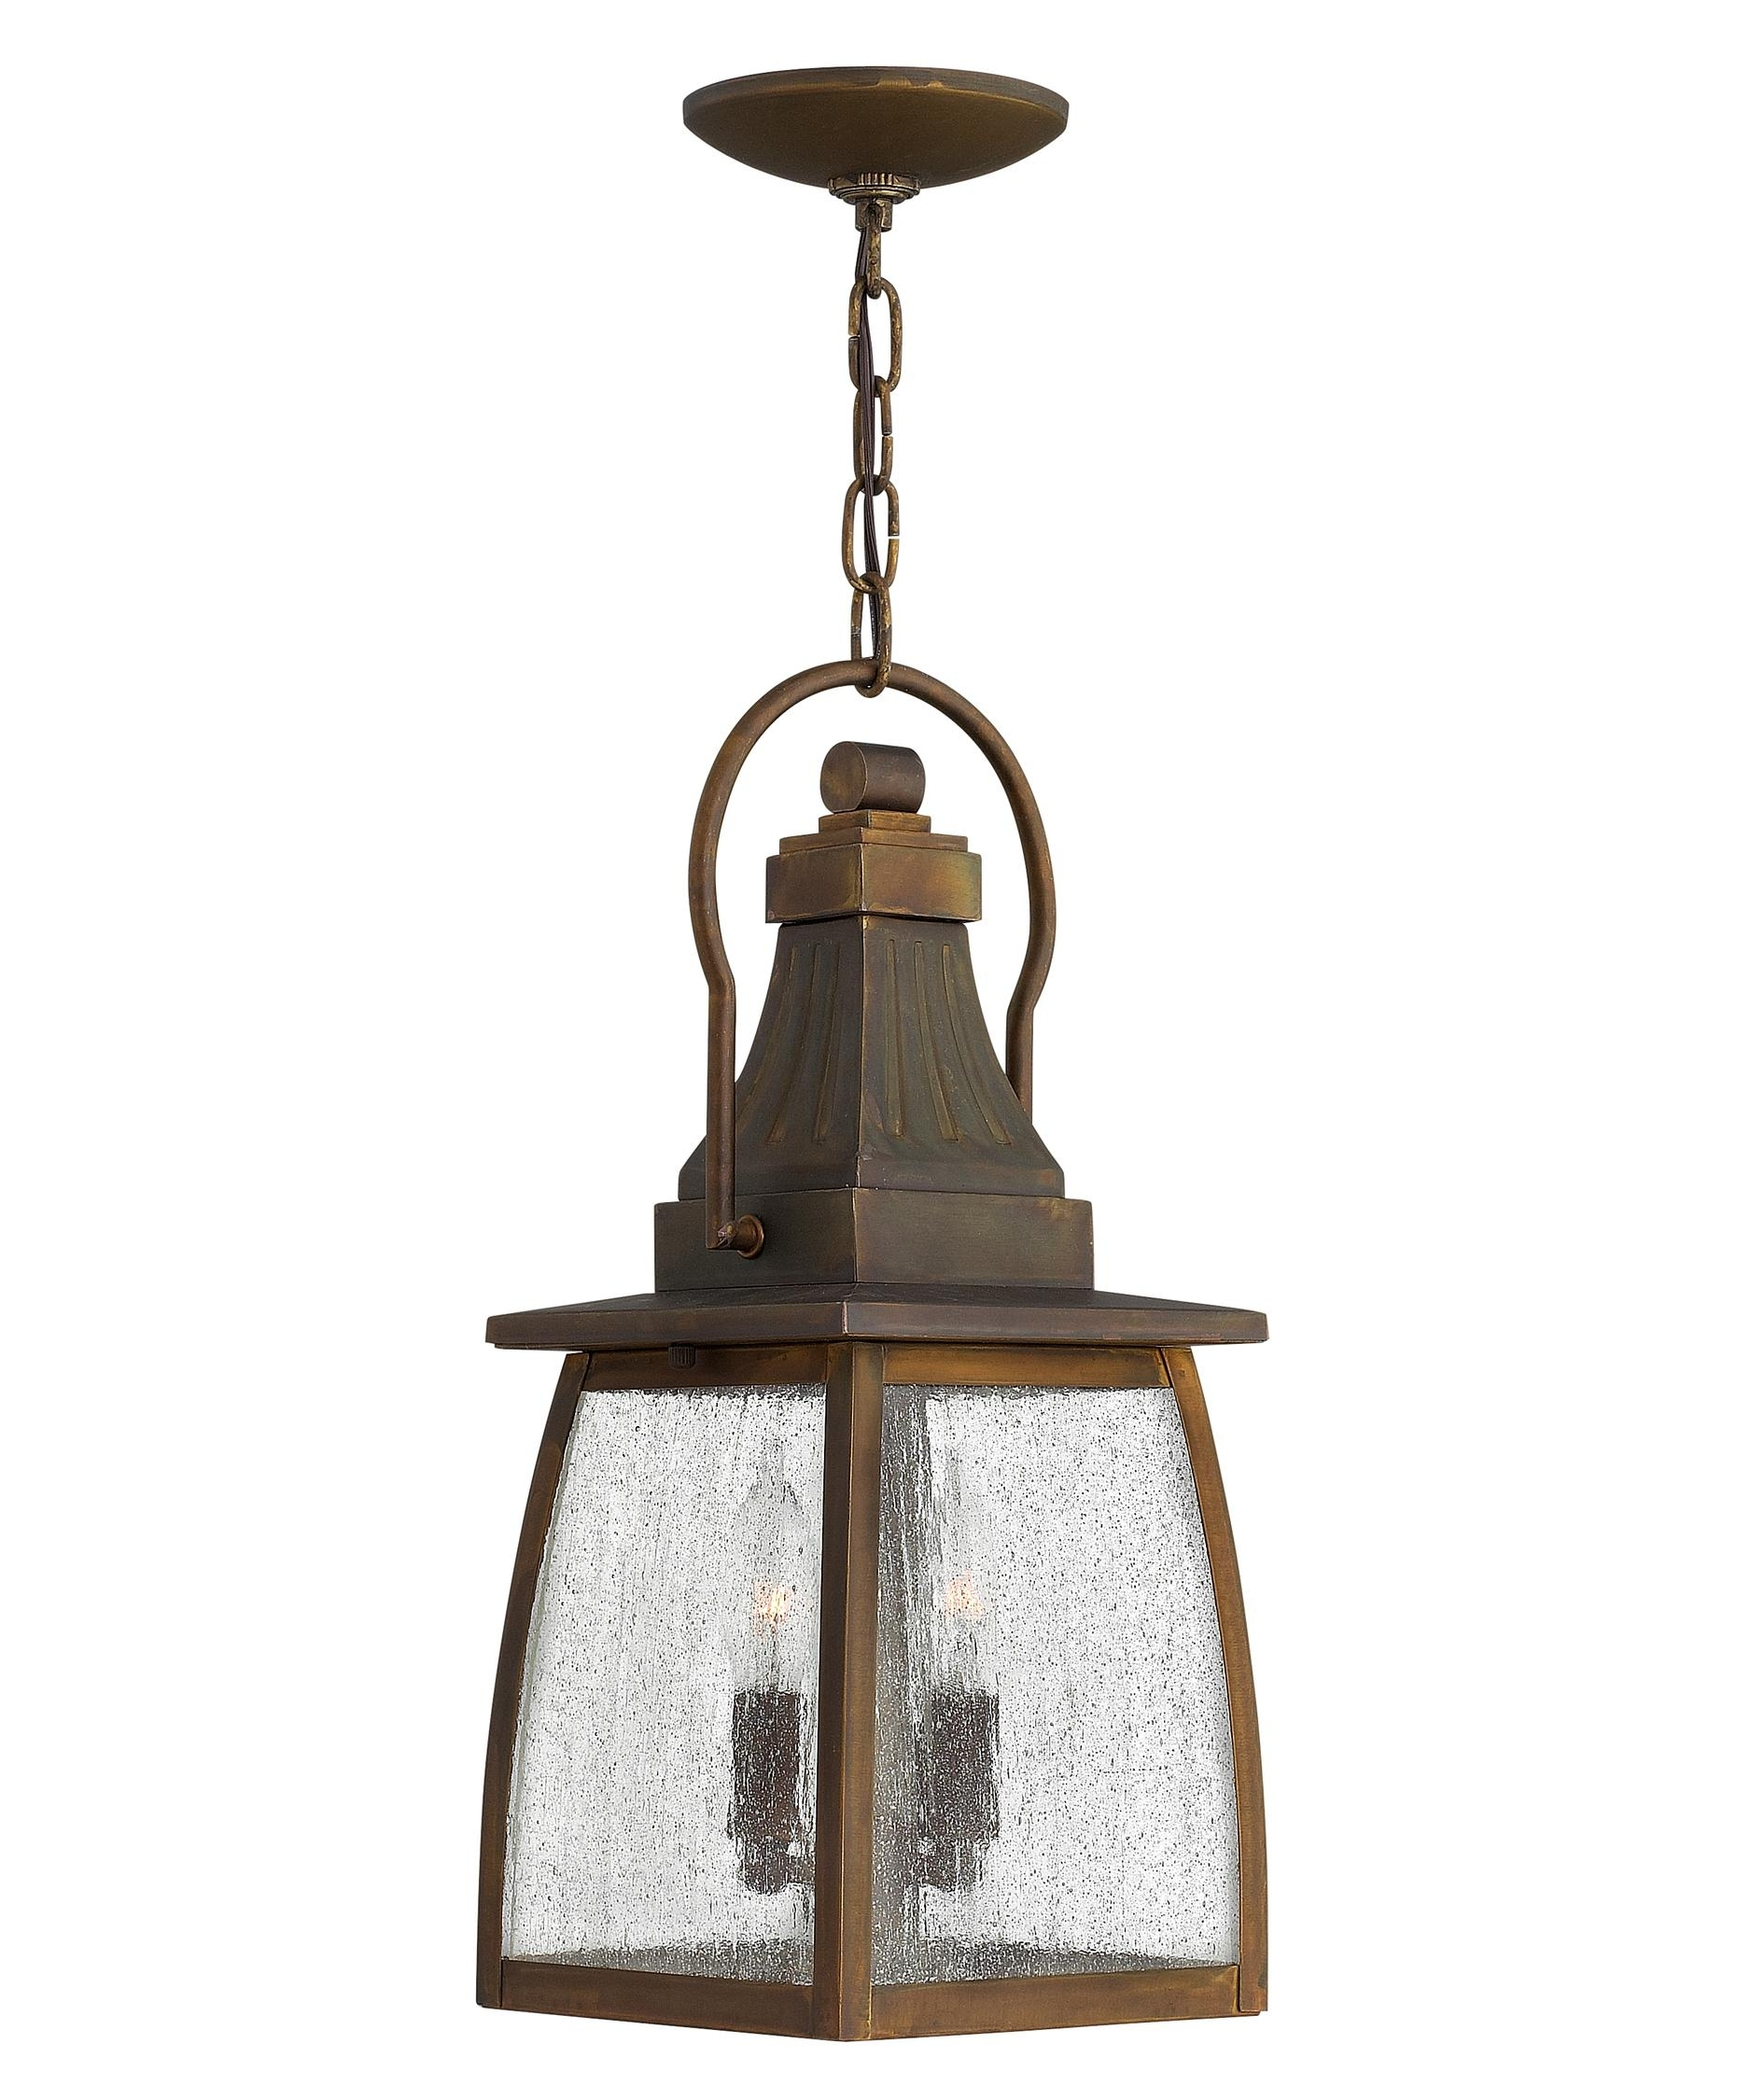 2018 Hinkley Outdoor Hanging Lights Intended For Hinkley Lighting 1202 Montauk 7 Inch Wide 2 Light Outdoor Hanging (View 7 of 20)